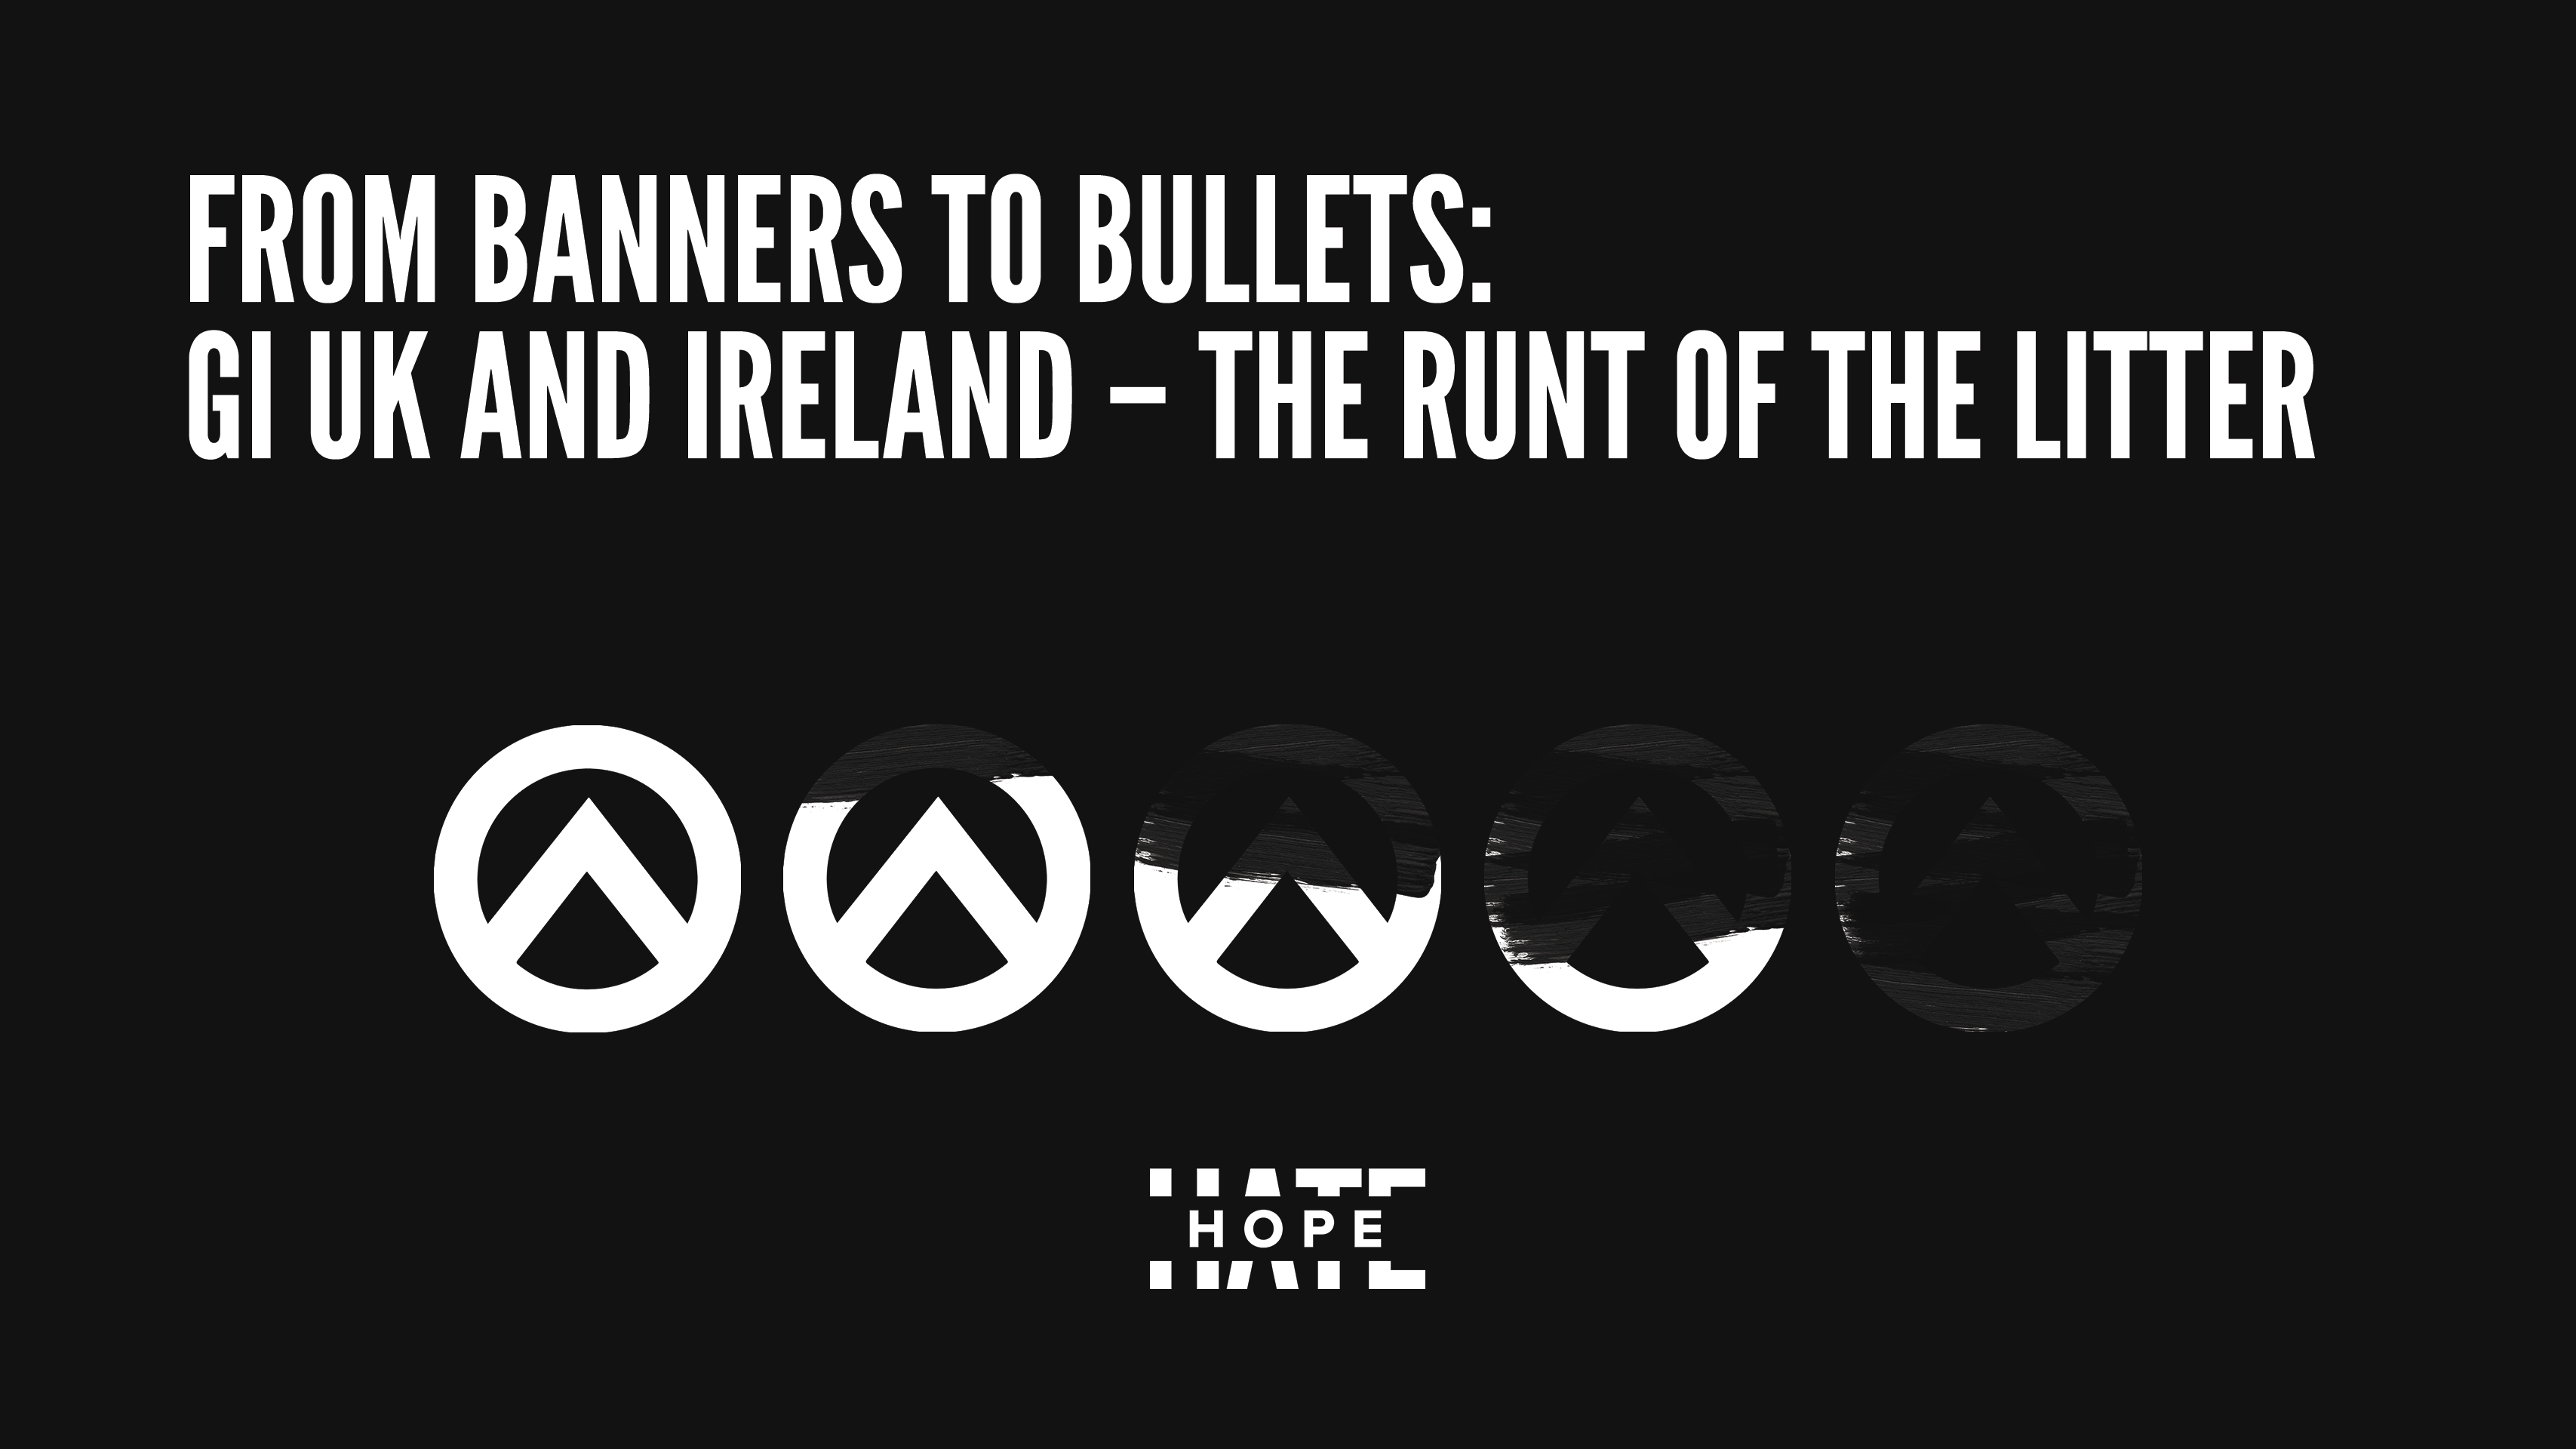 """a black graphic with white text that reads """"From Banners to Bullets: GI UK and Ireland - The Runt of the Litter"""""""